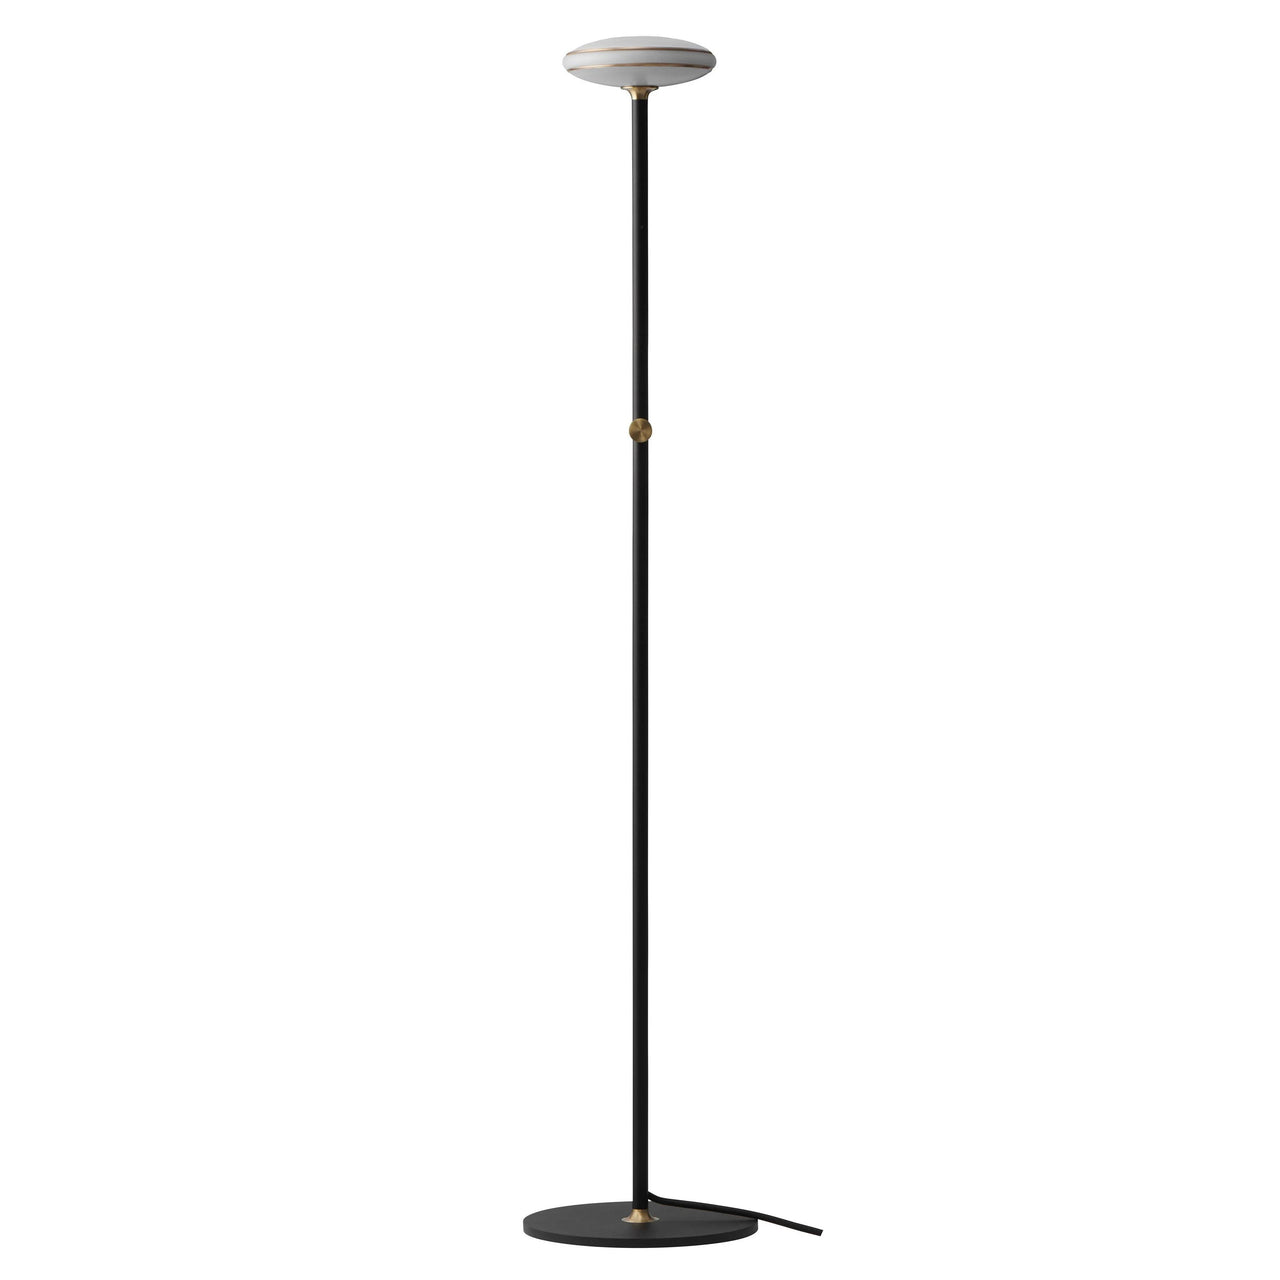 ØS1 Floor Lamp: Brass+ Black + Without Node